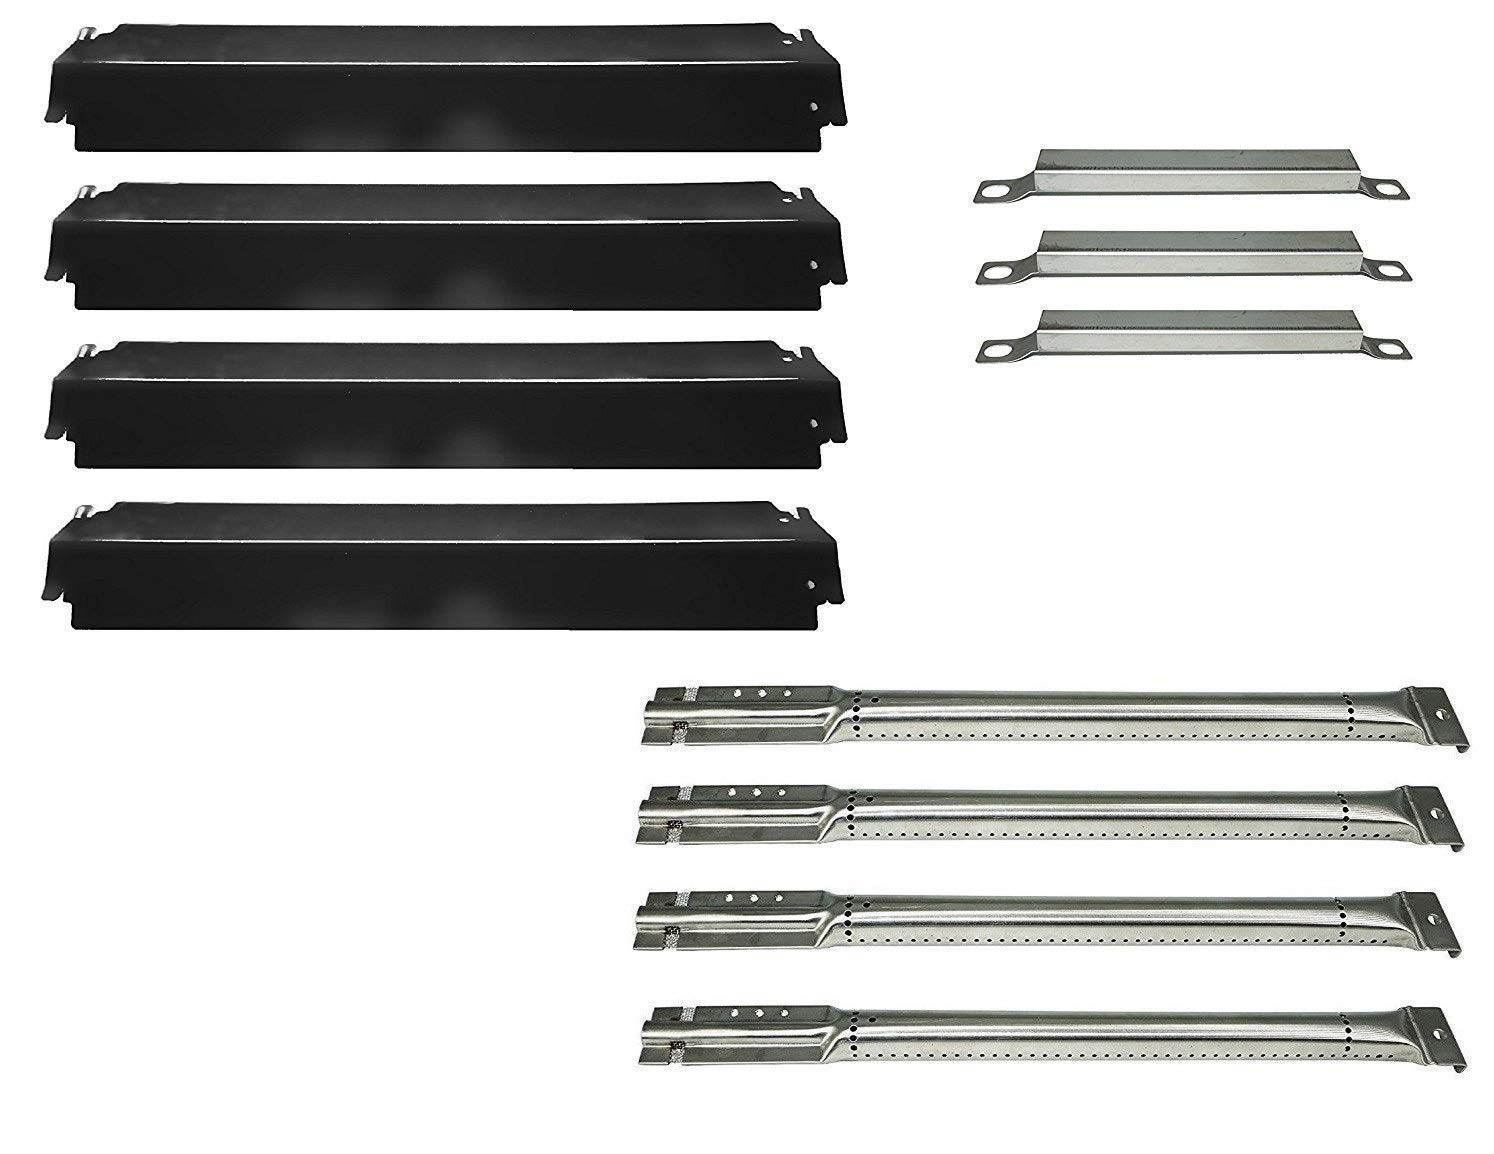 DOZYANT Parts Kit Replacement Charbroil Gas Grill Burners, Heat Plates and Crossover Tubes by DOZYANT